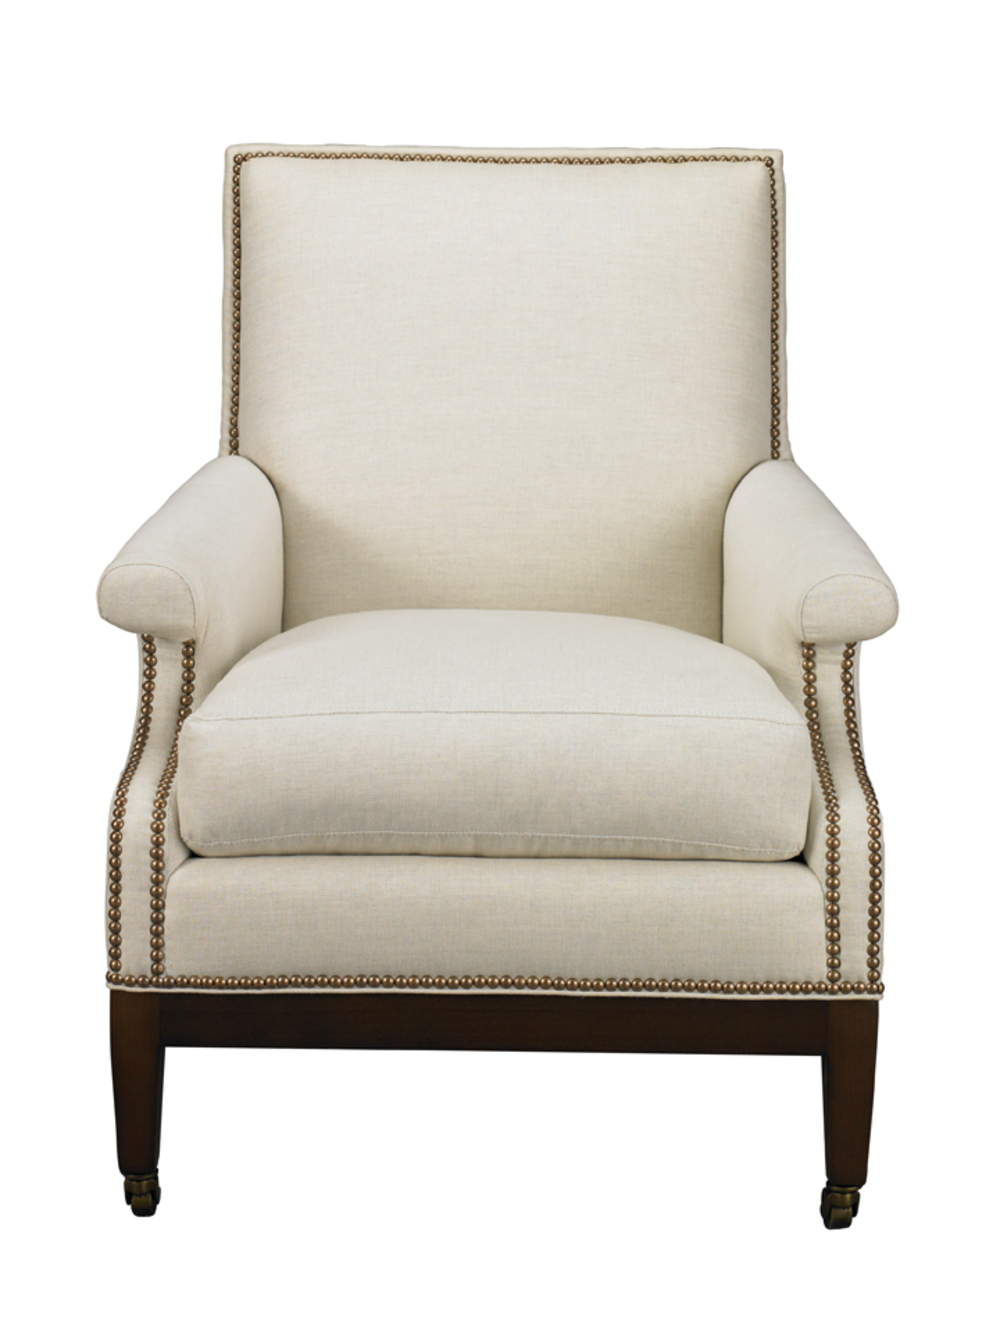 Mr. and Mrs. Howard by Sherrill Furniture - Cantilevered Chair